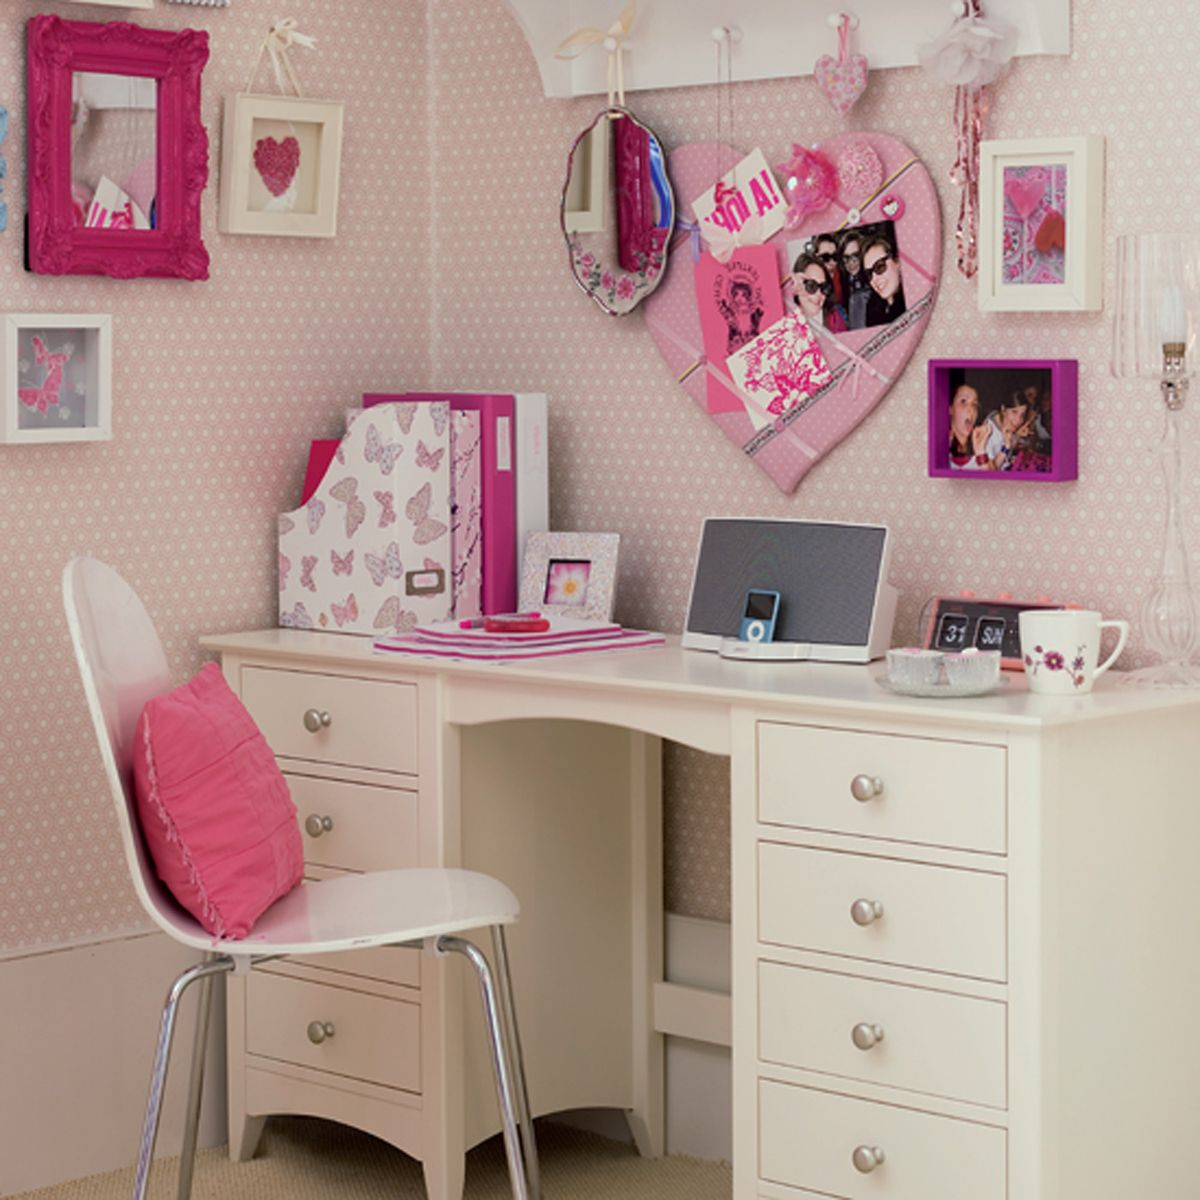 Kids Study Area Ideas: Romantic Study Desk Inspirations In 2019